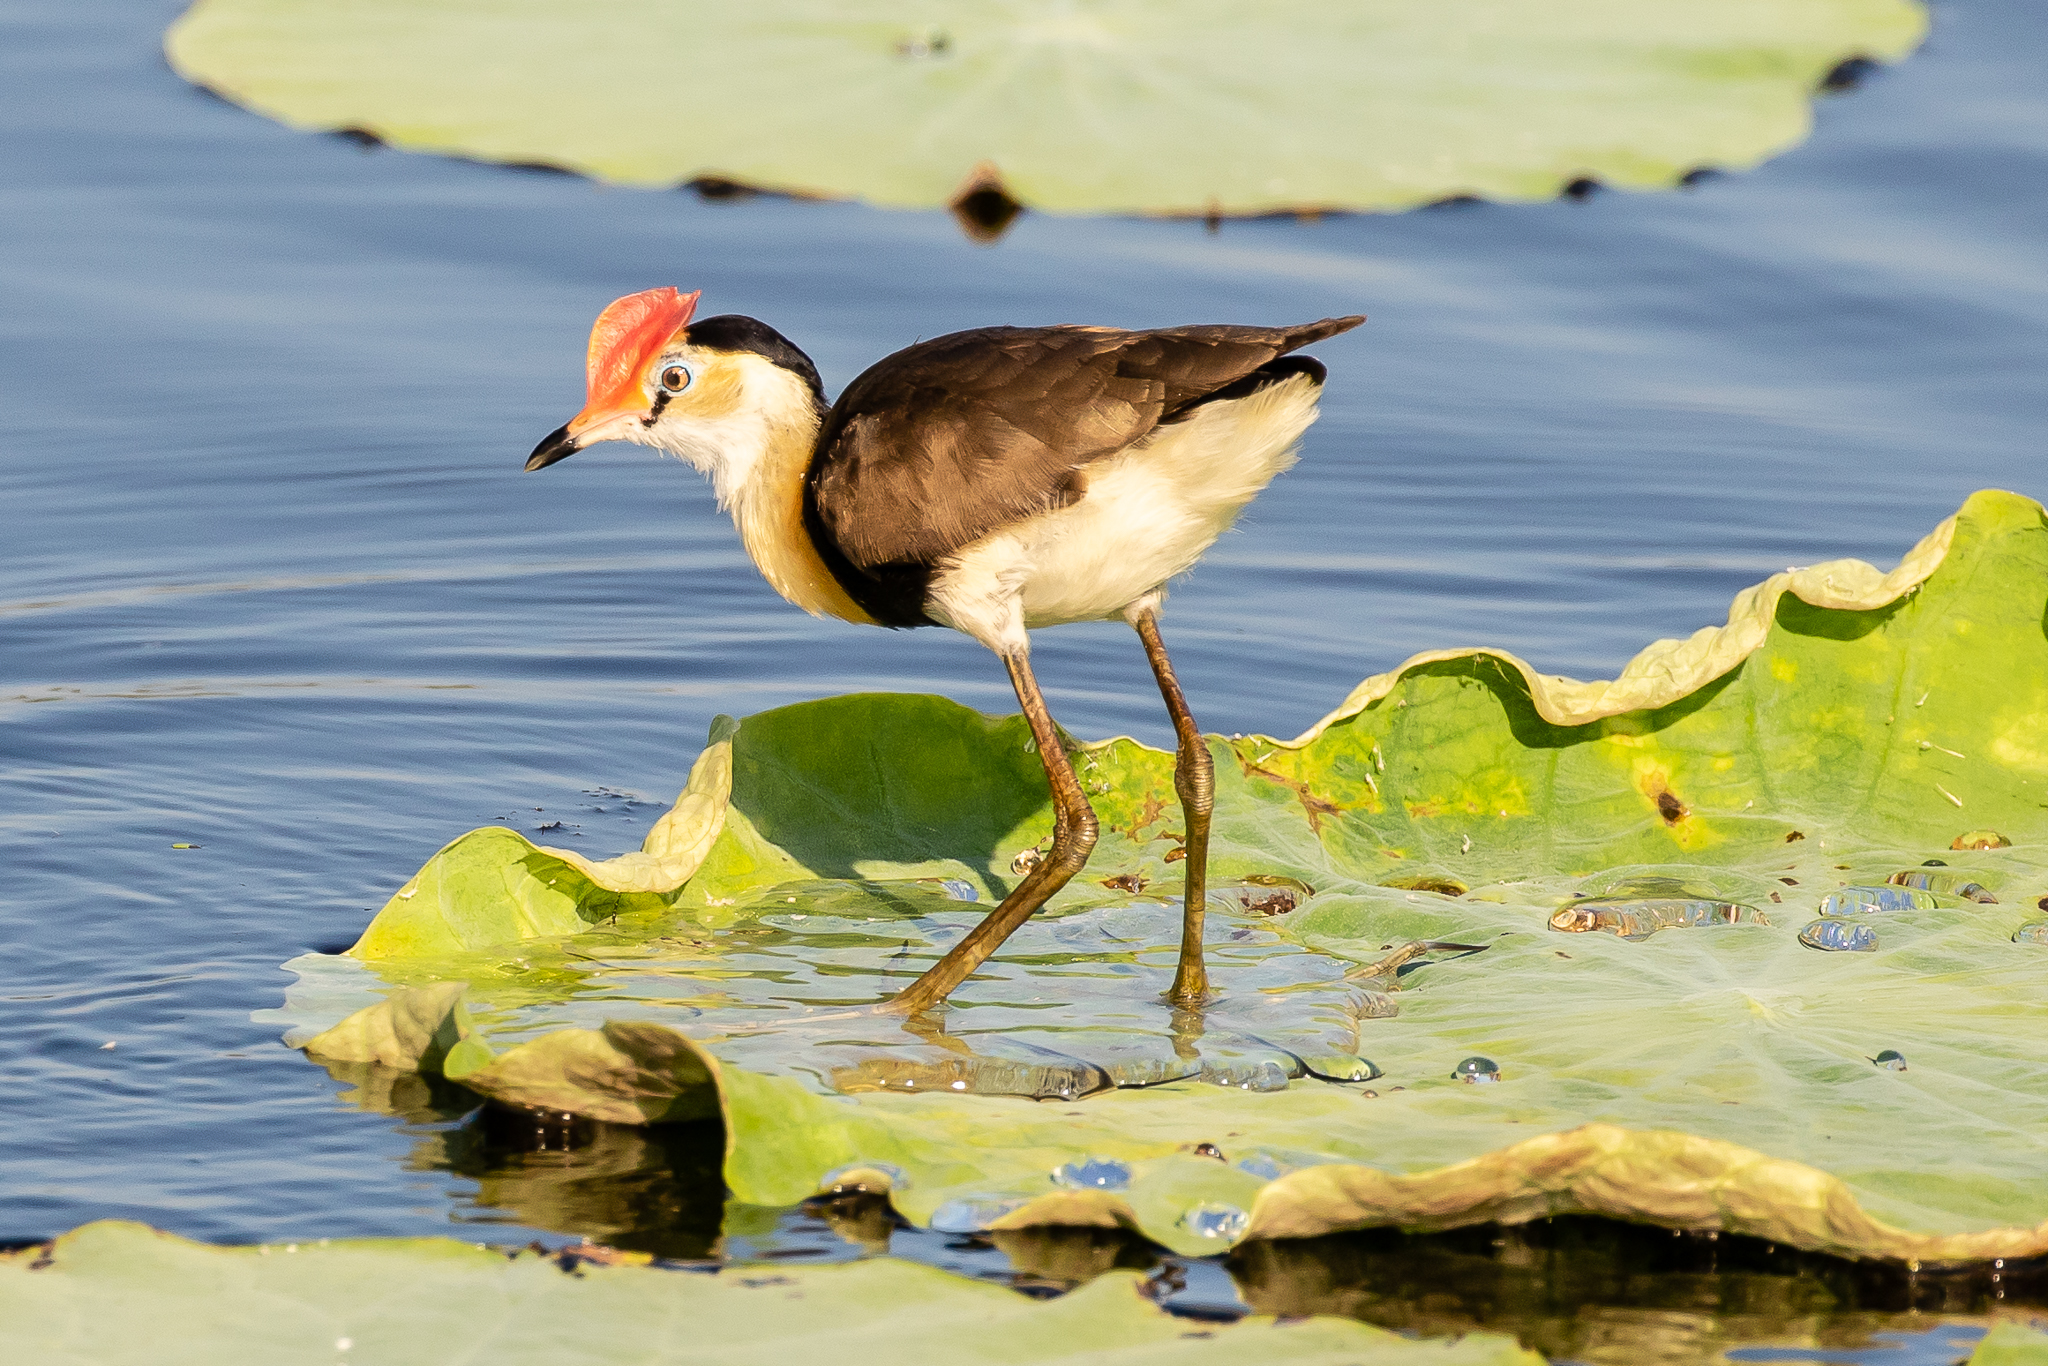 This Comb-crested Jacana trips lightly across lily-pads. They inhabit tropical swamps in northern coastal Australia and can be seen in northern NSW.